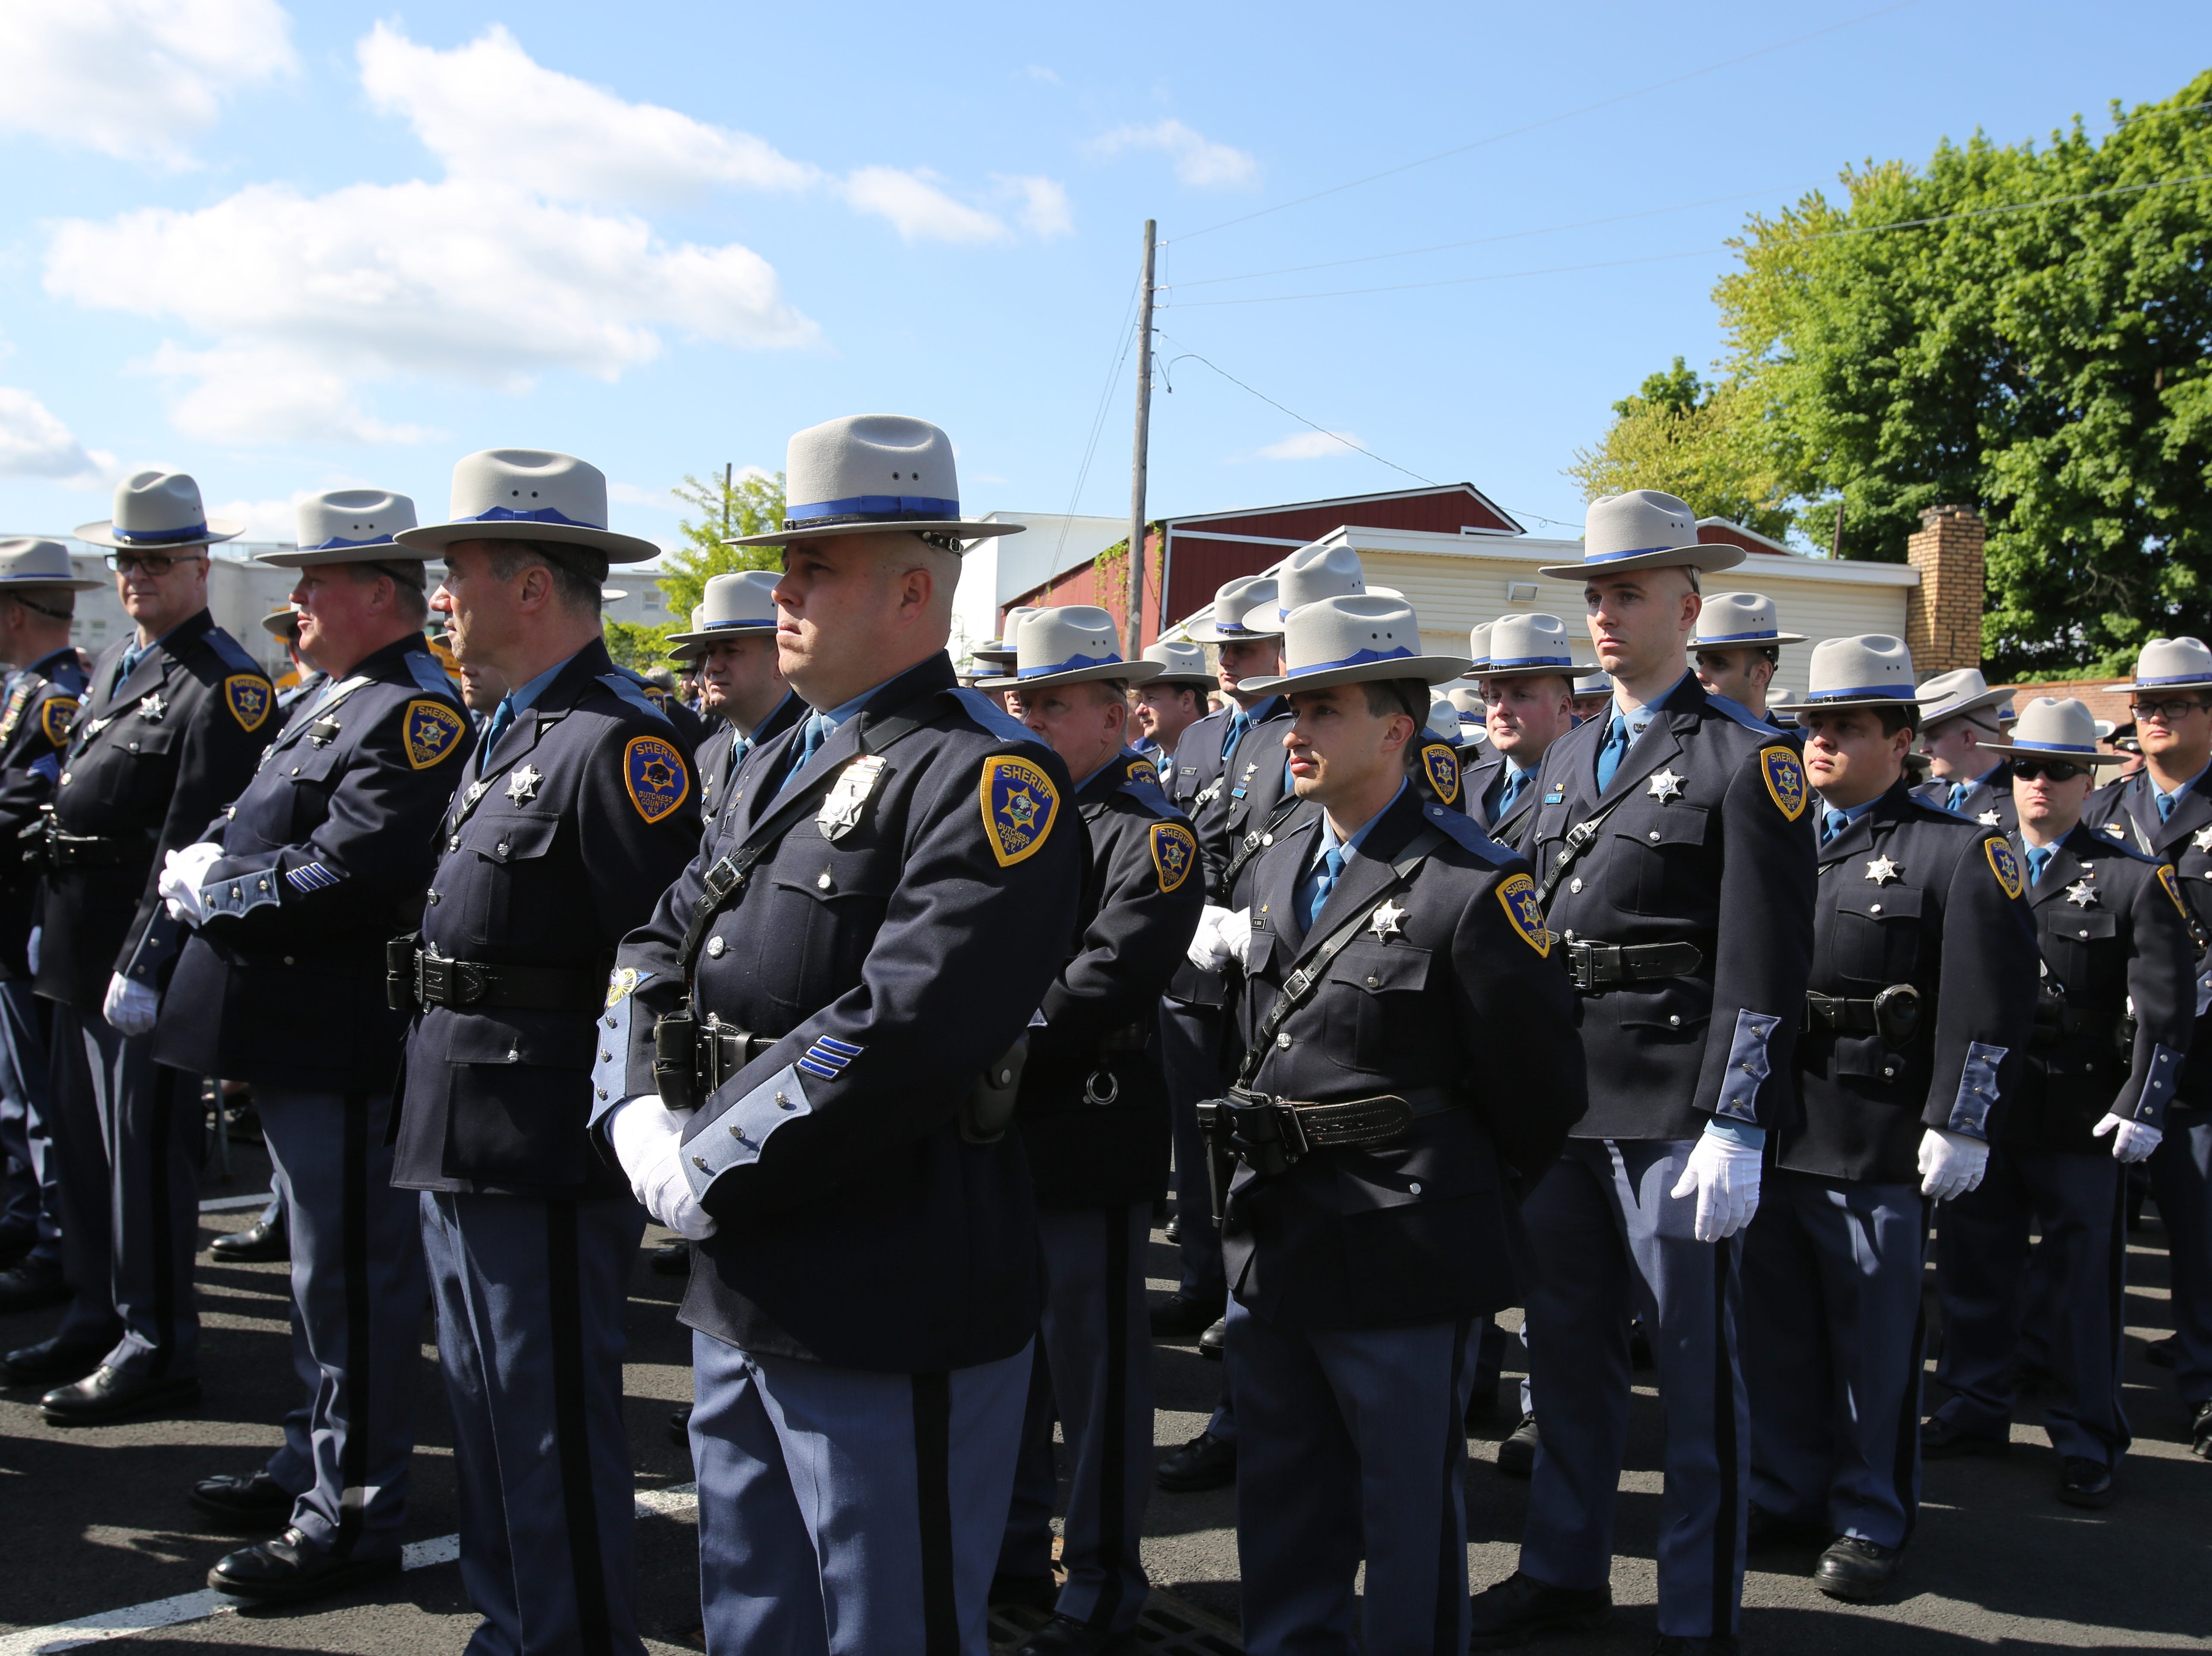 Dutchess County Sheriff's Office deputies stand and listen to Sheriff Butch Anderson speak about the sacrifices of law enforcement on May 16, 2019.